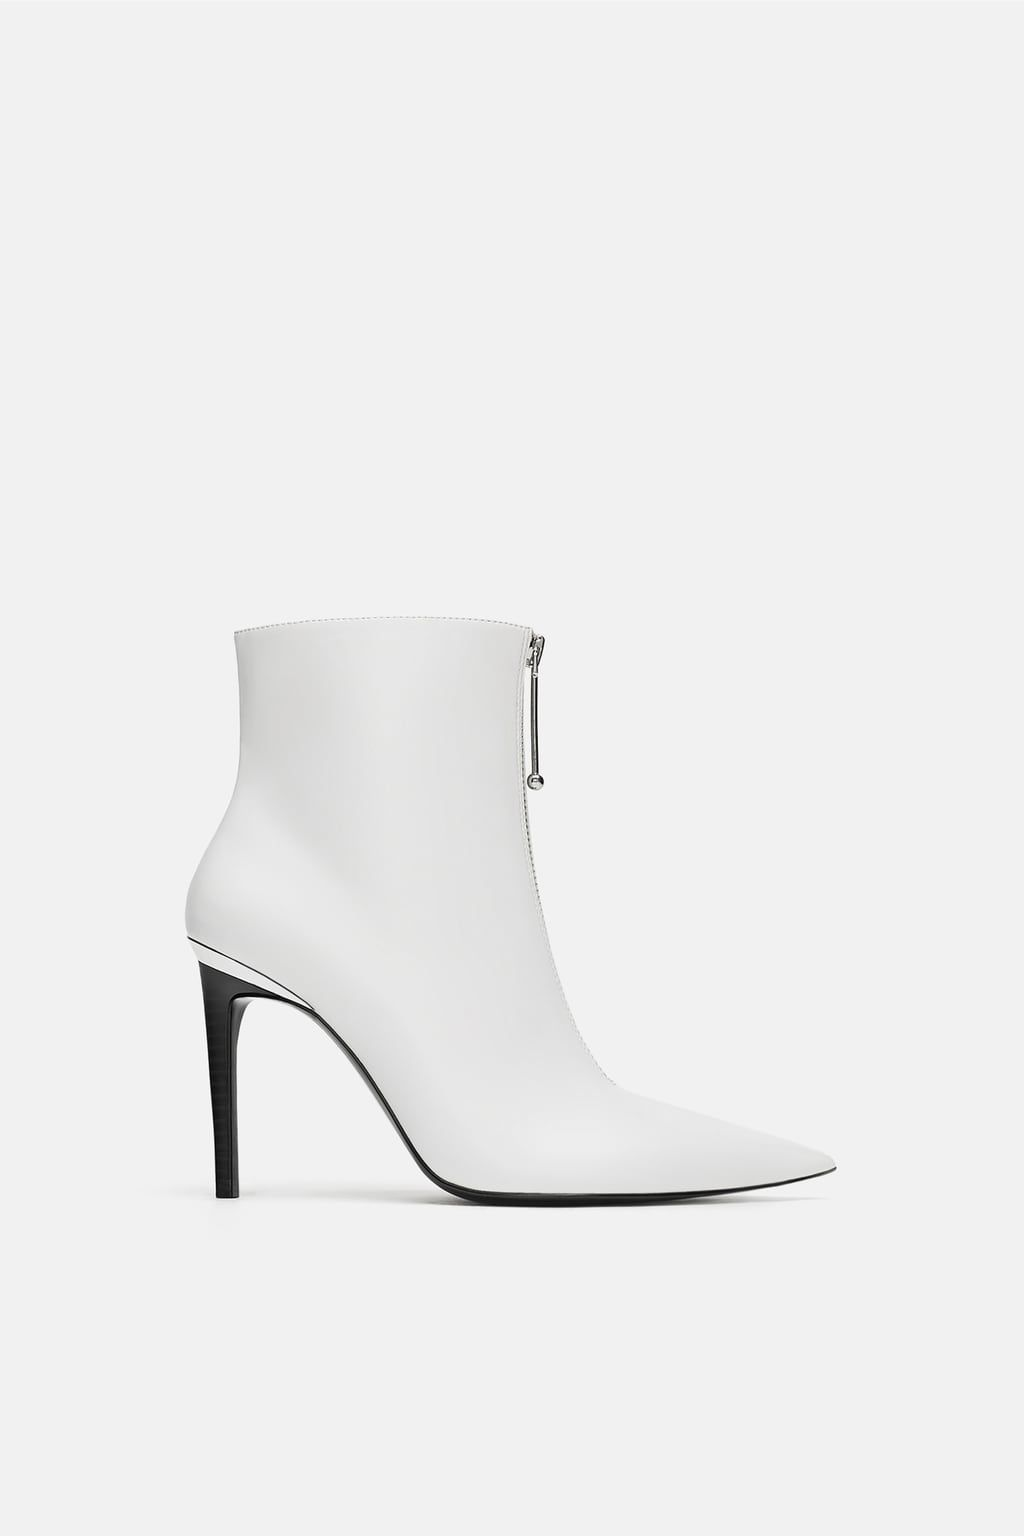 Zara   Boots, White ankle boots, Shoes